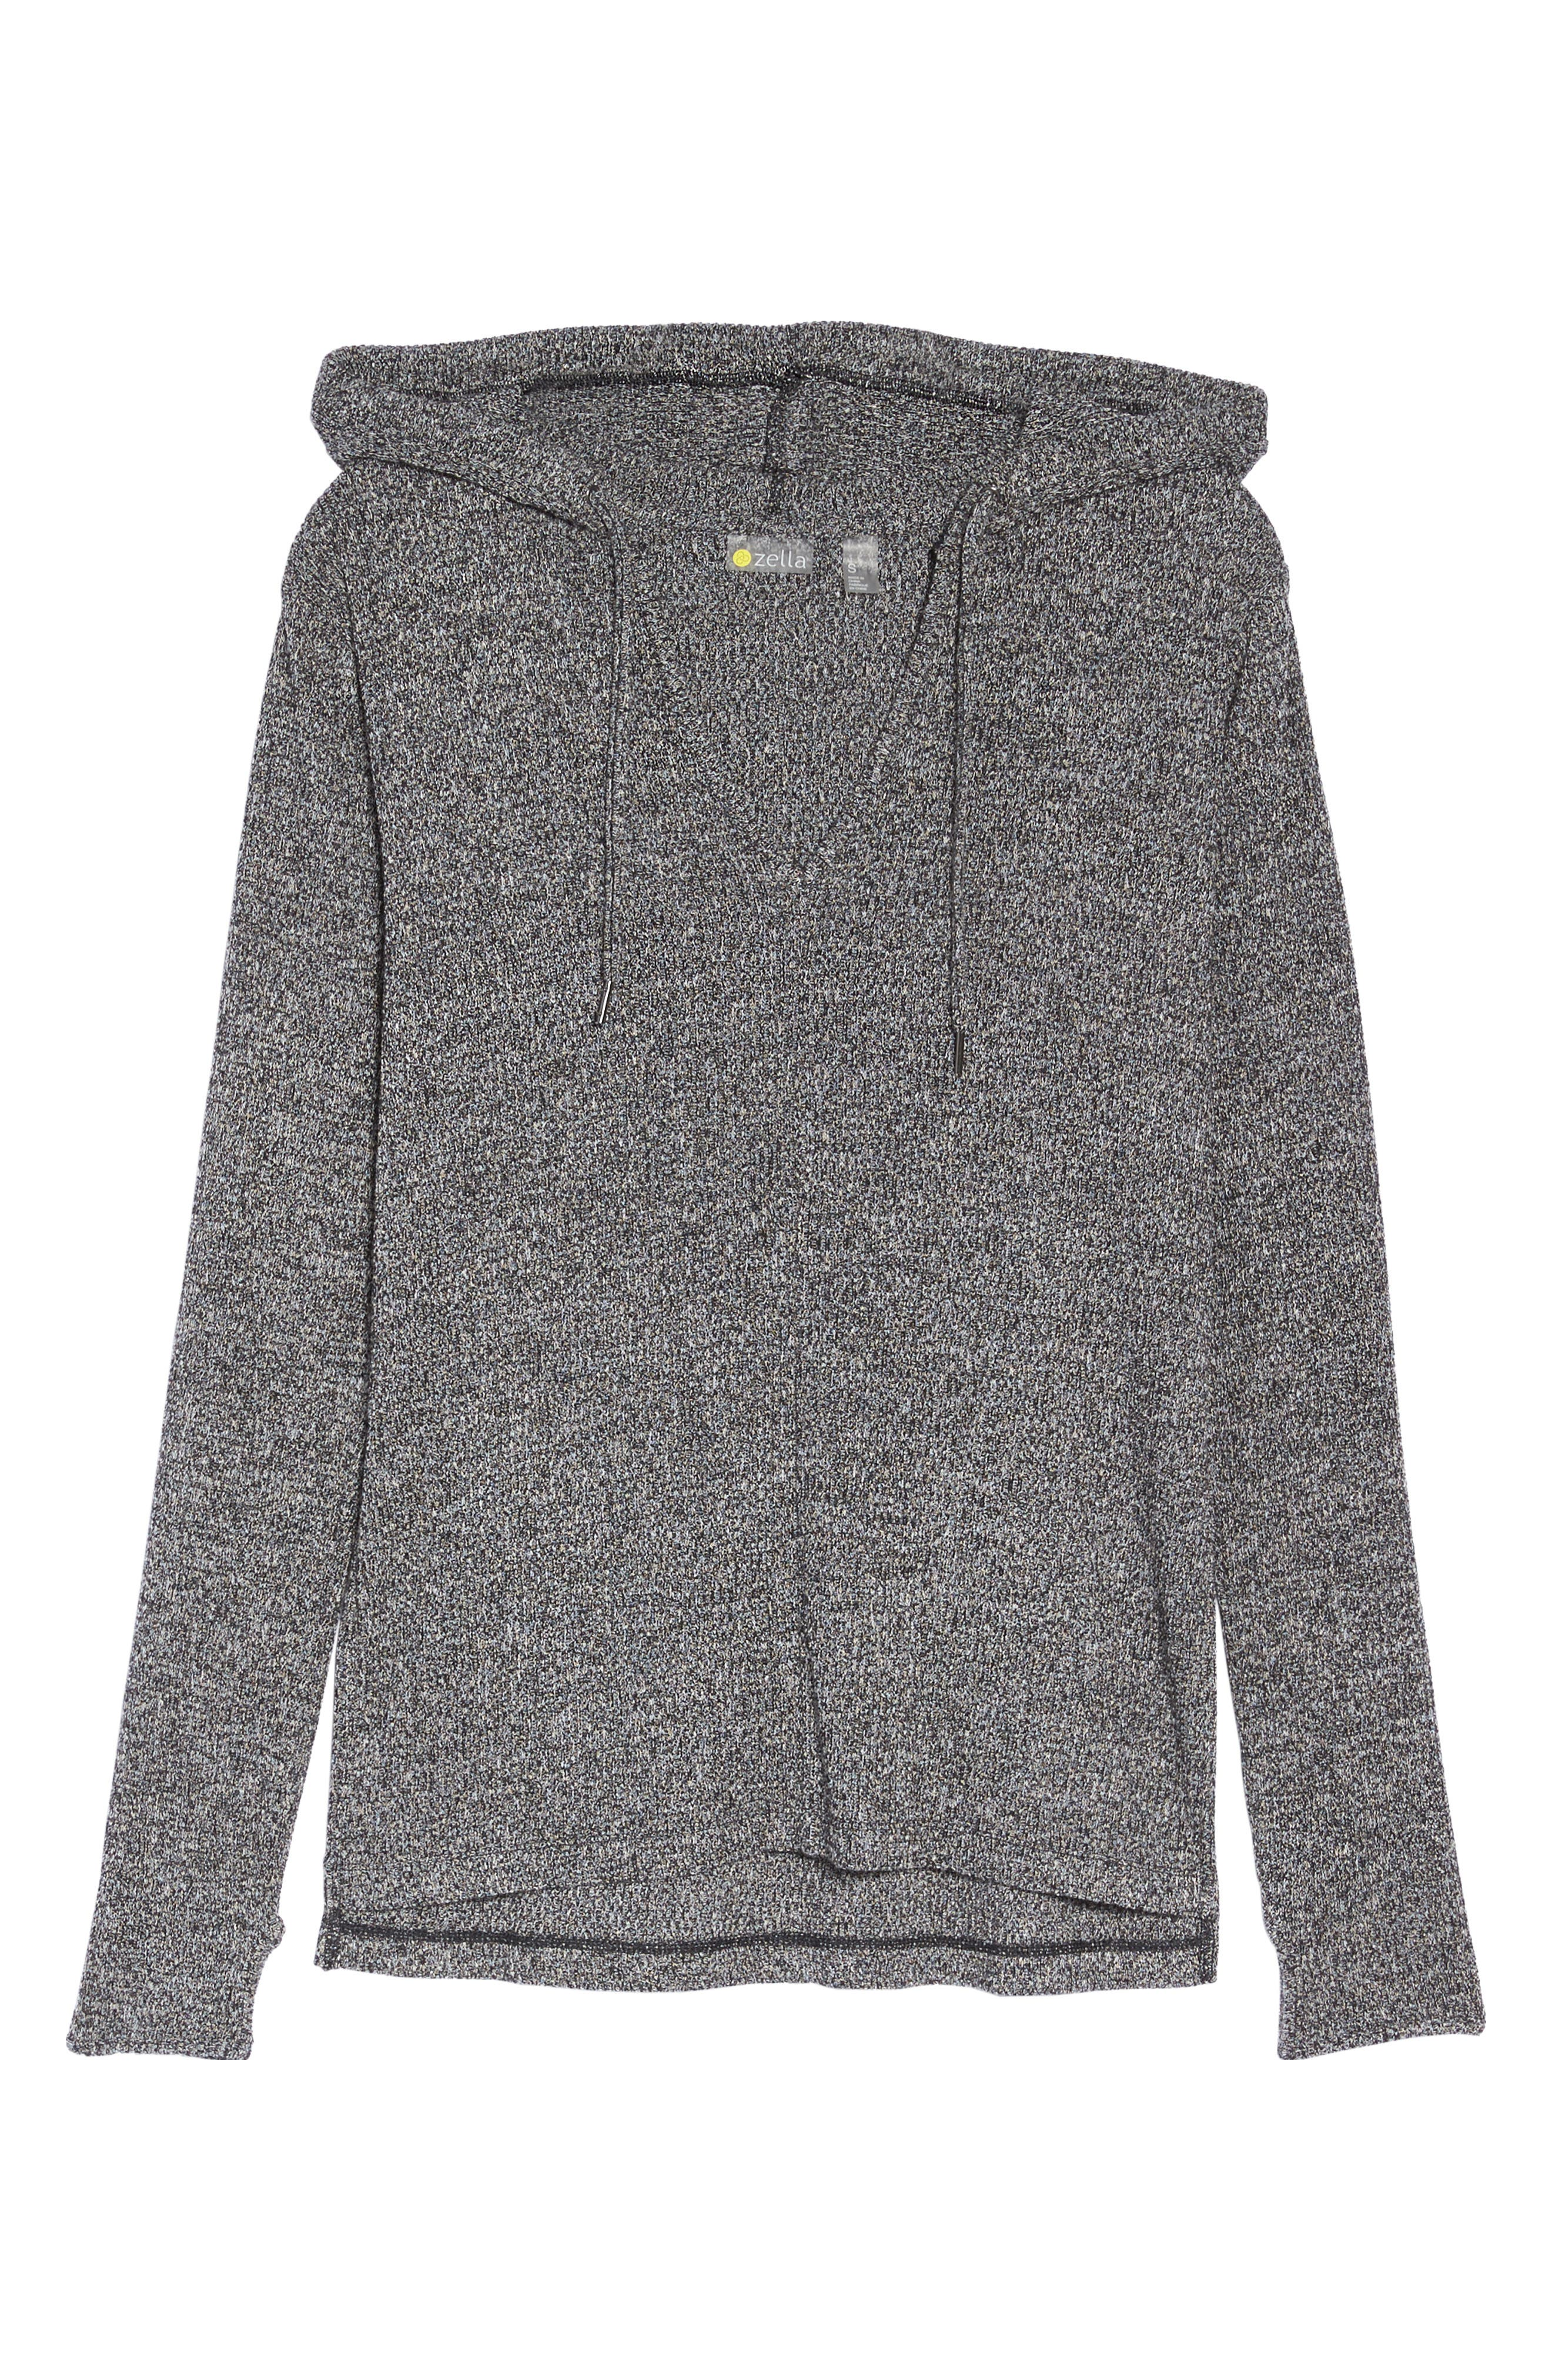 Mantra Hooded Pullover Top,                             Alternate thumbnail 7, color,                             Black Heather